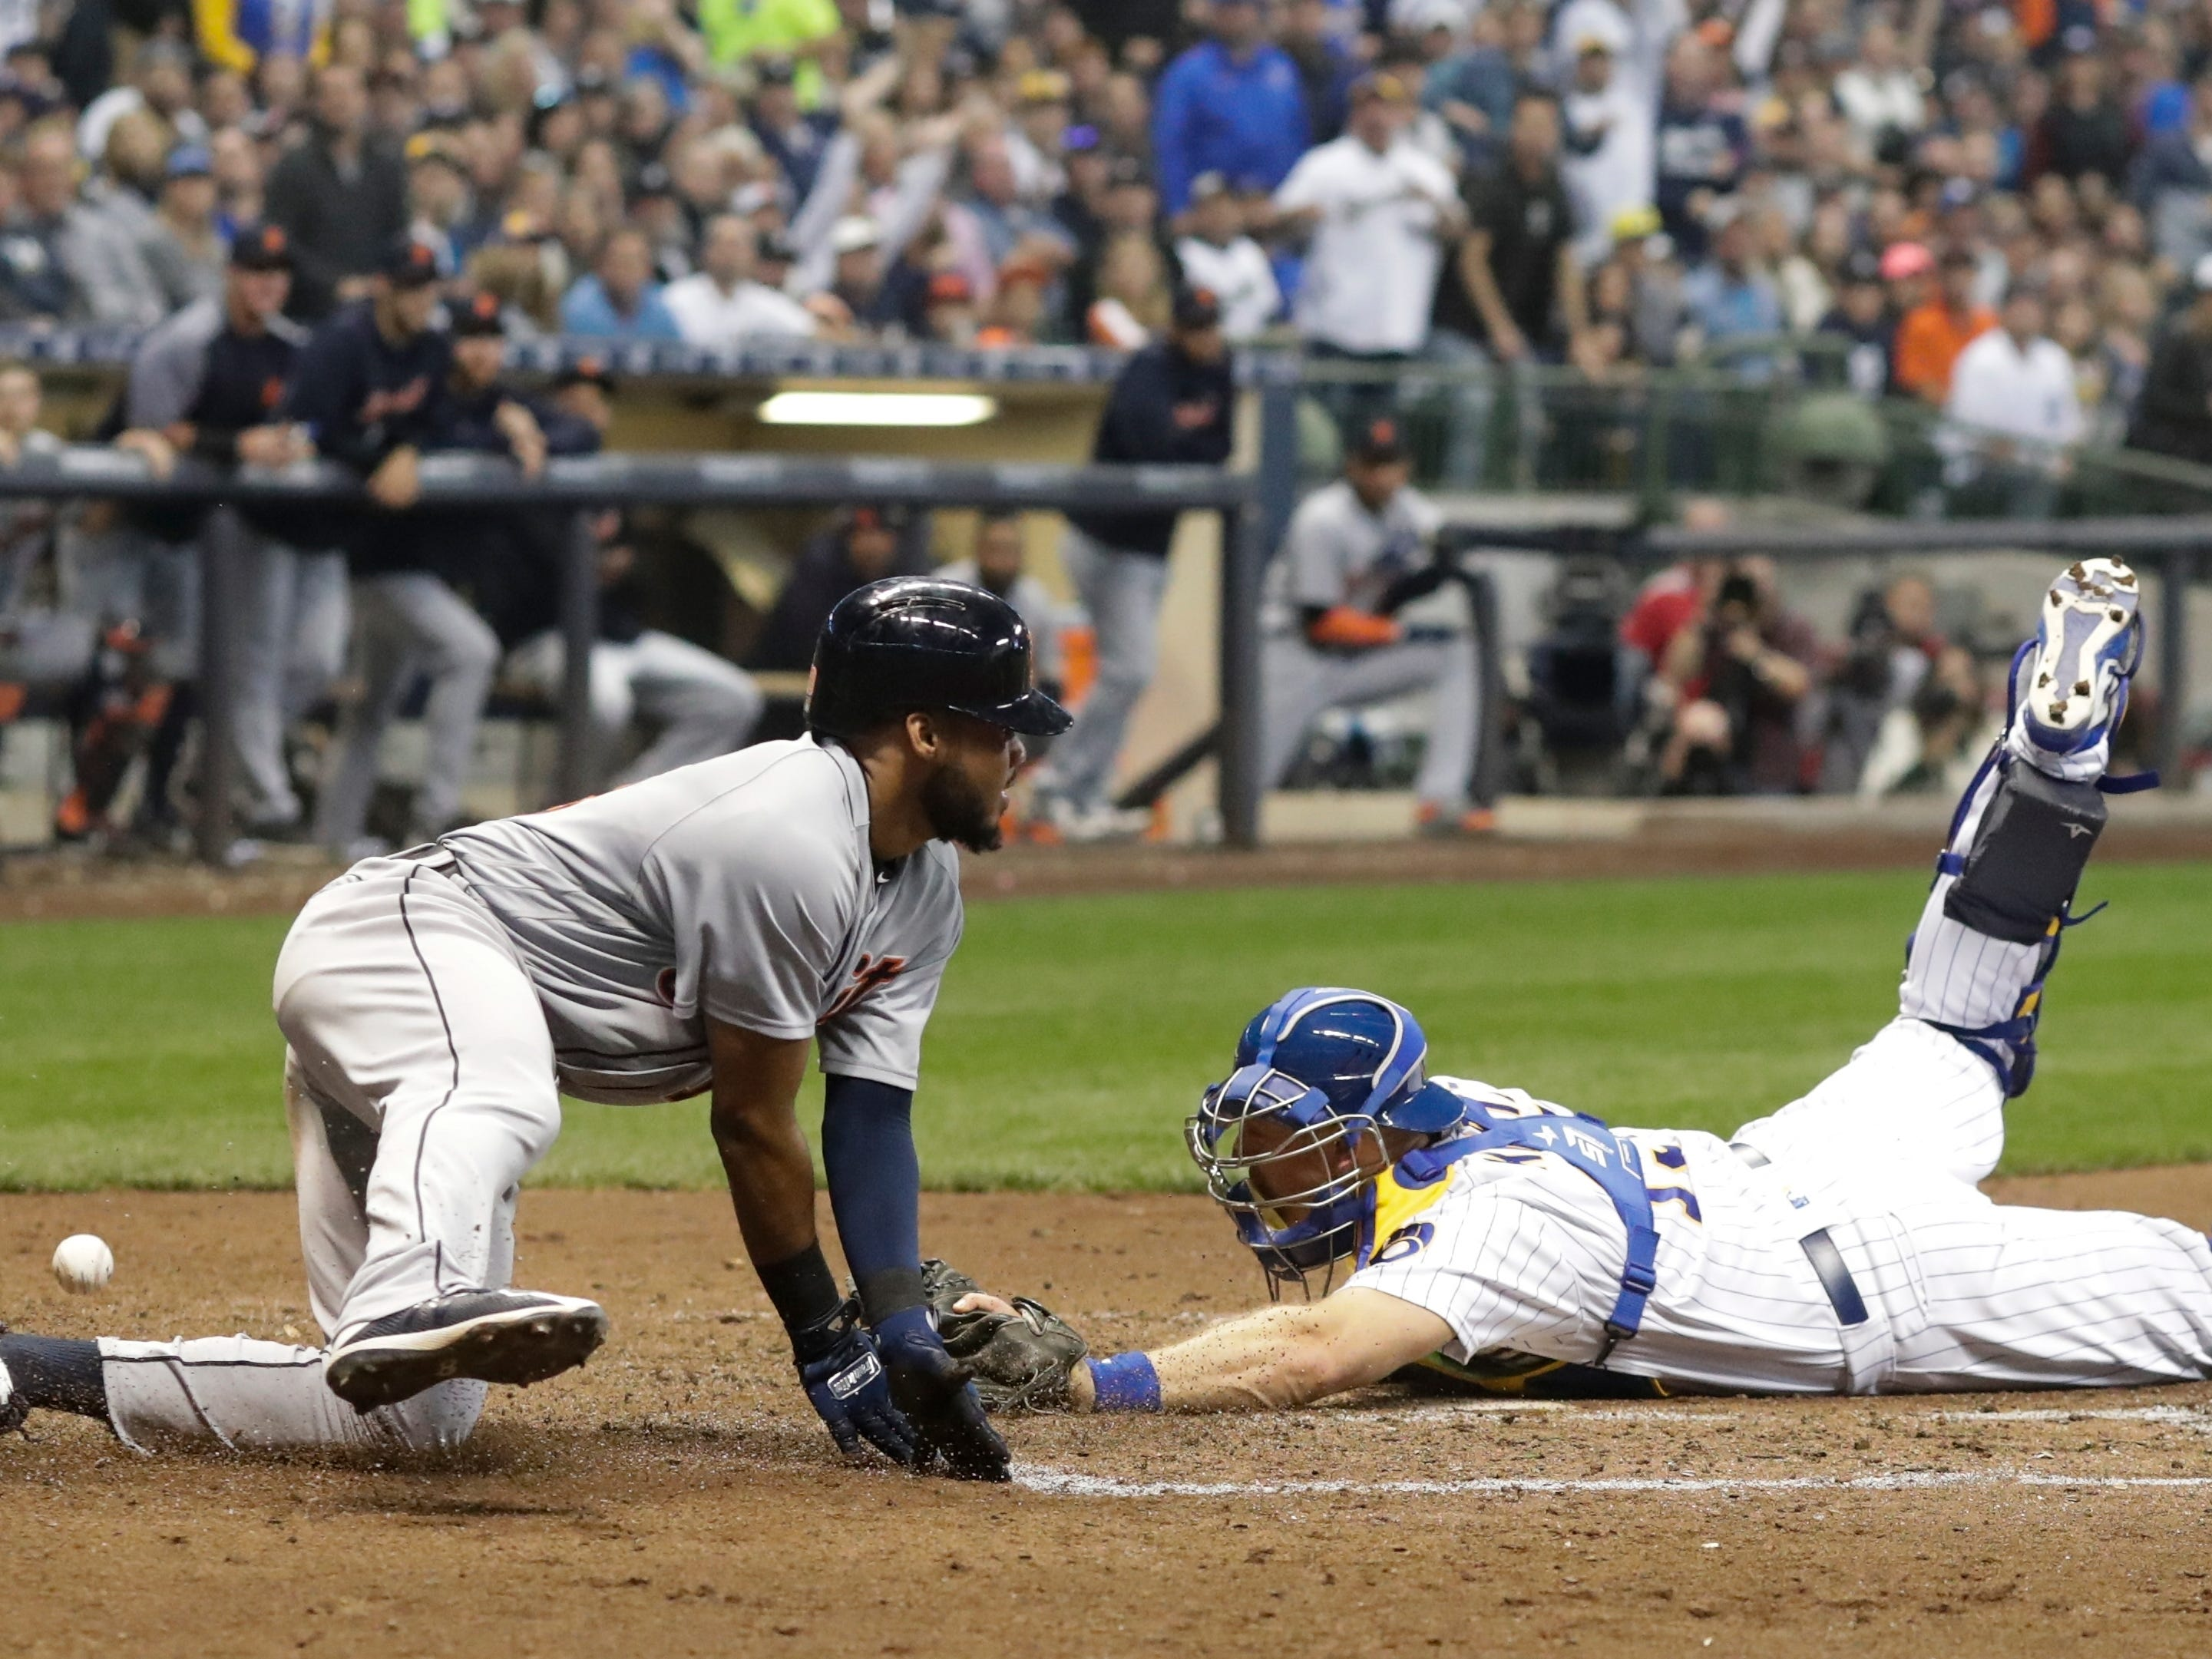 Detroit Tigers' Dawel Lugo scores safely past Milwaukee Brewers catcher Erik Kratz during the sixth inning Sept. 29, 2018, in Milwaukee. Lugo scored from third on a sacrifice fly.